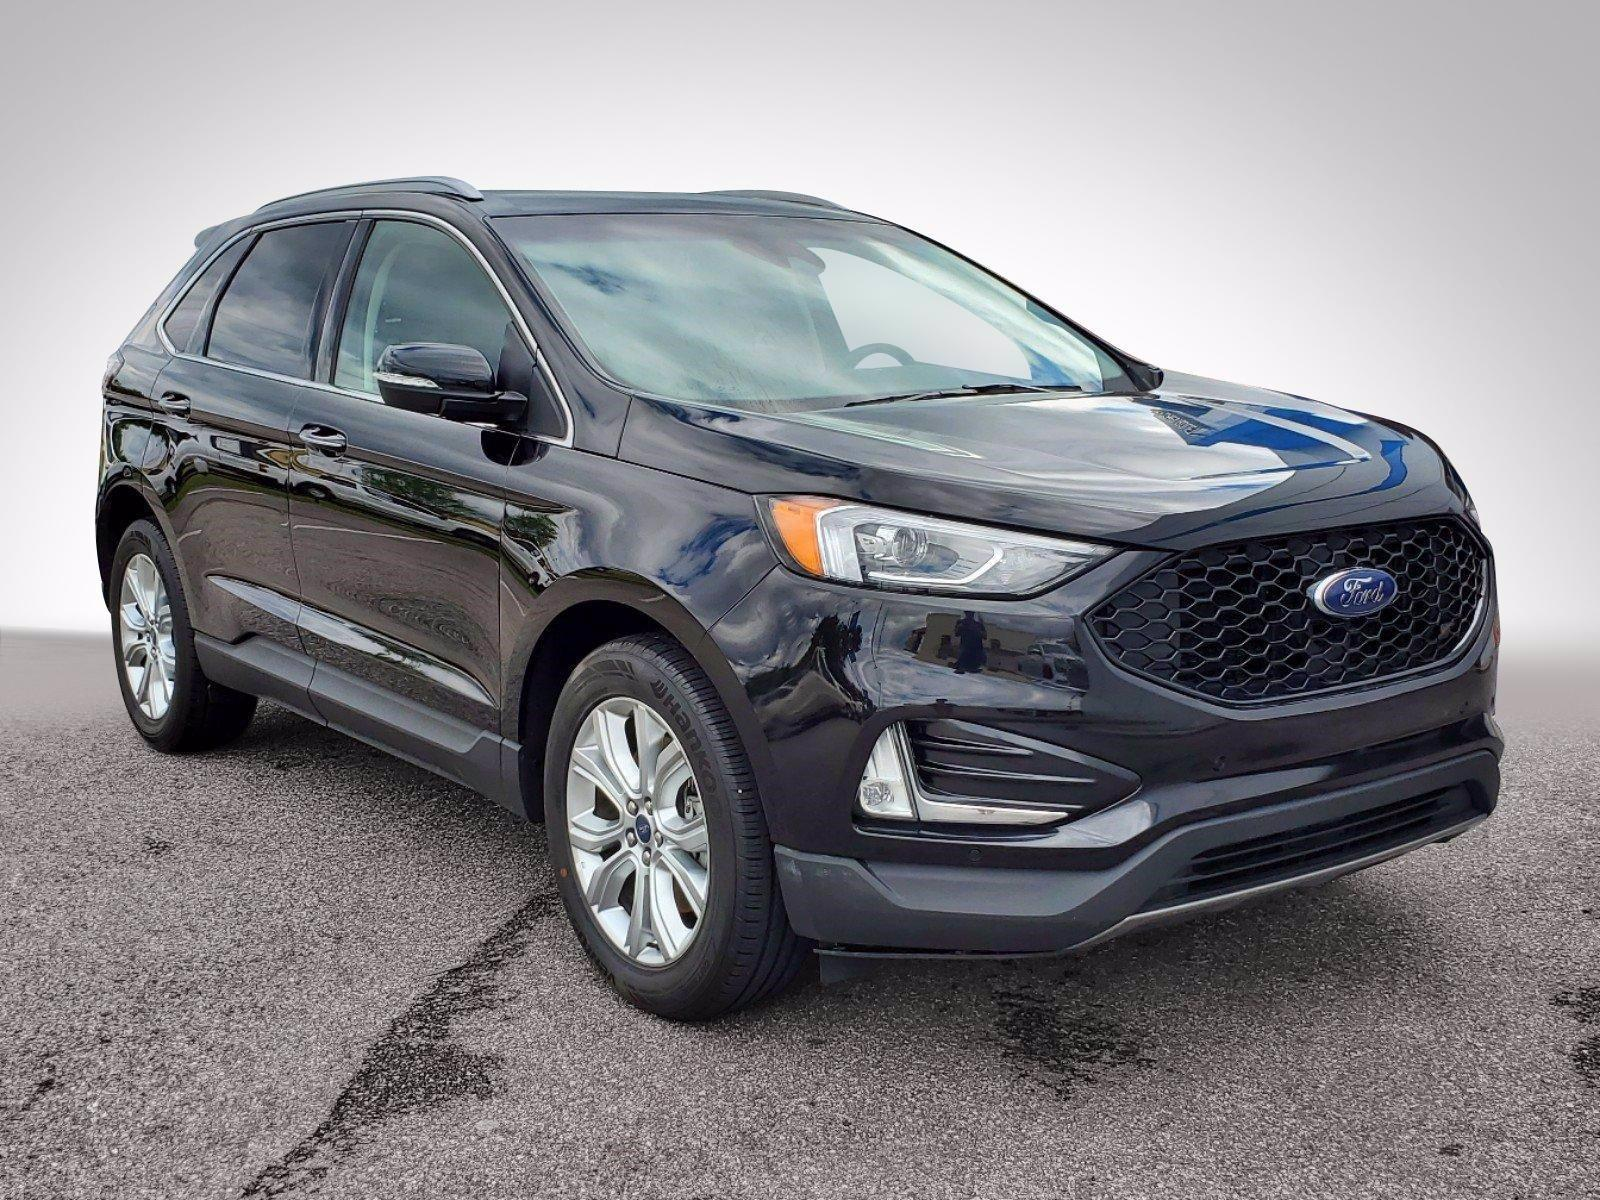 2020 Ford Edge Vehicle Photo in HOOVER, AL 35216